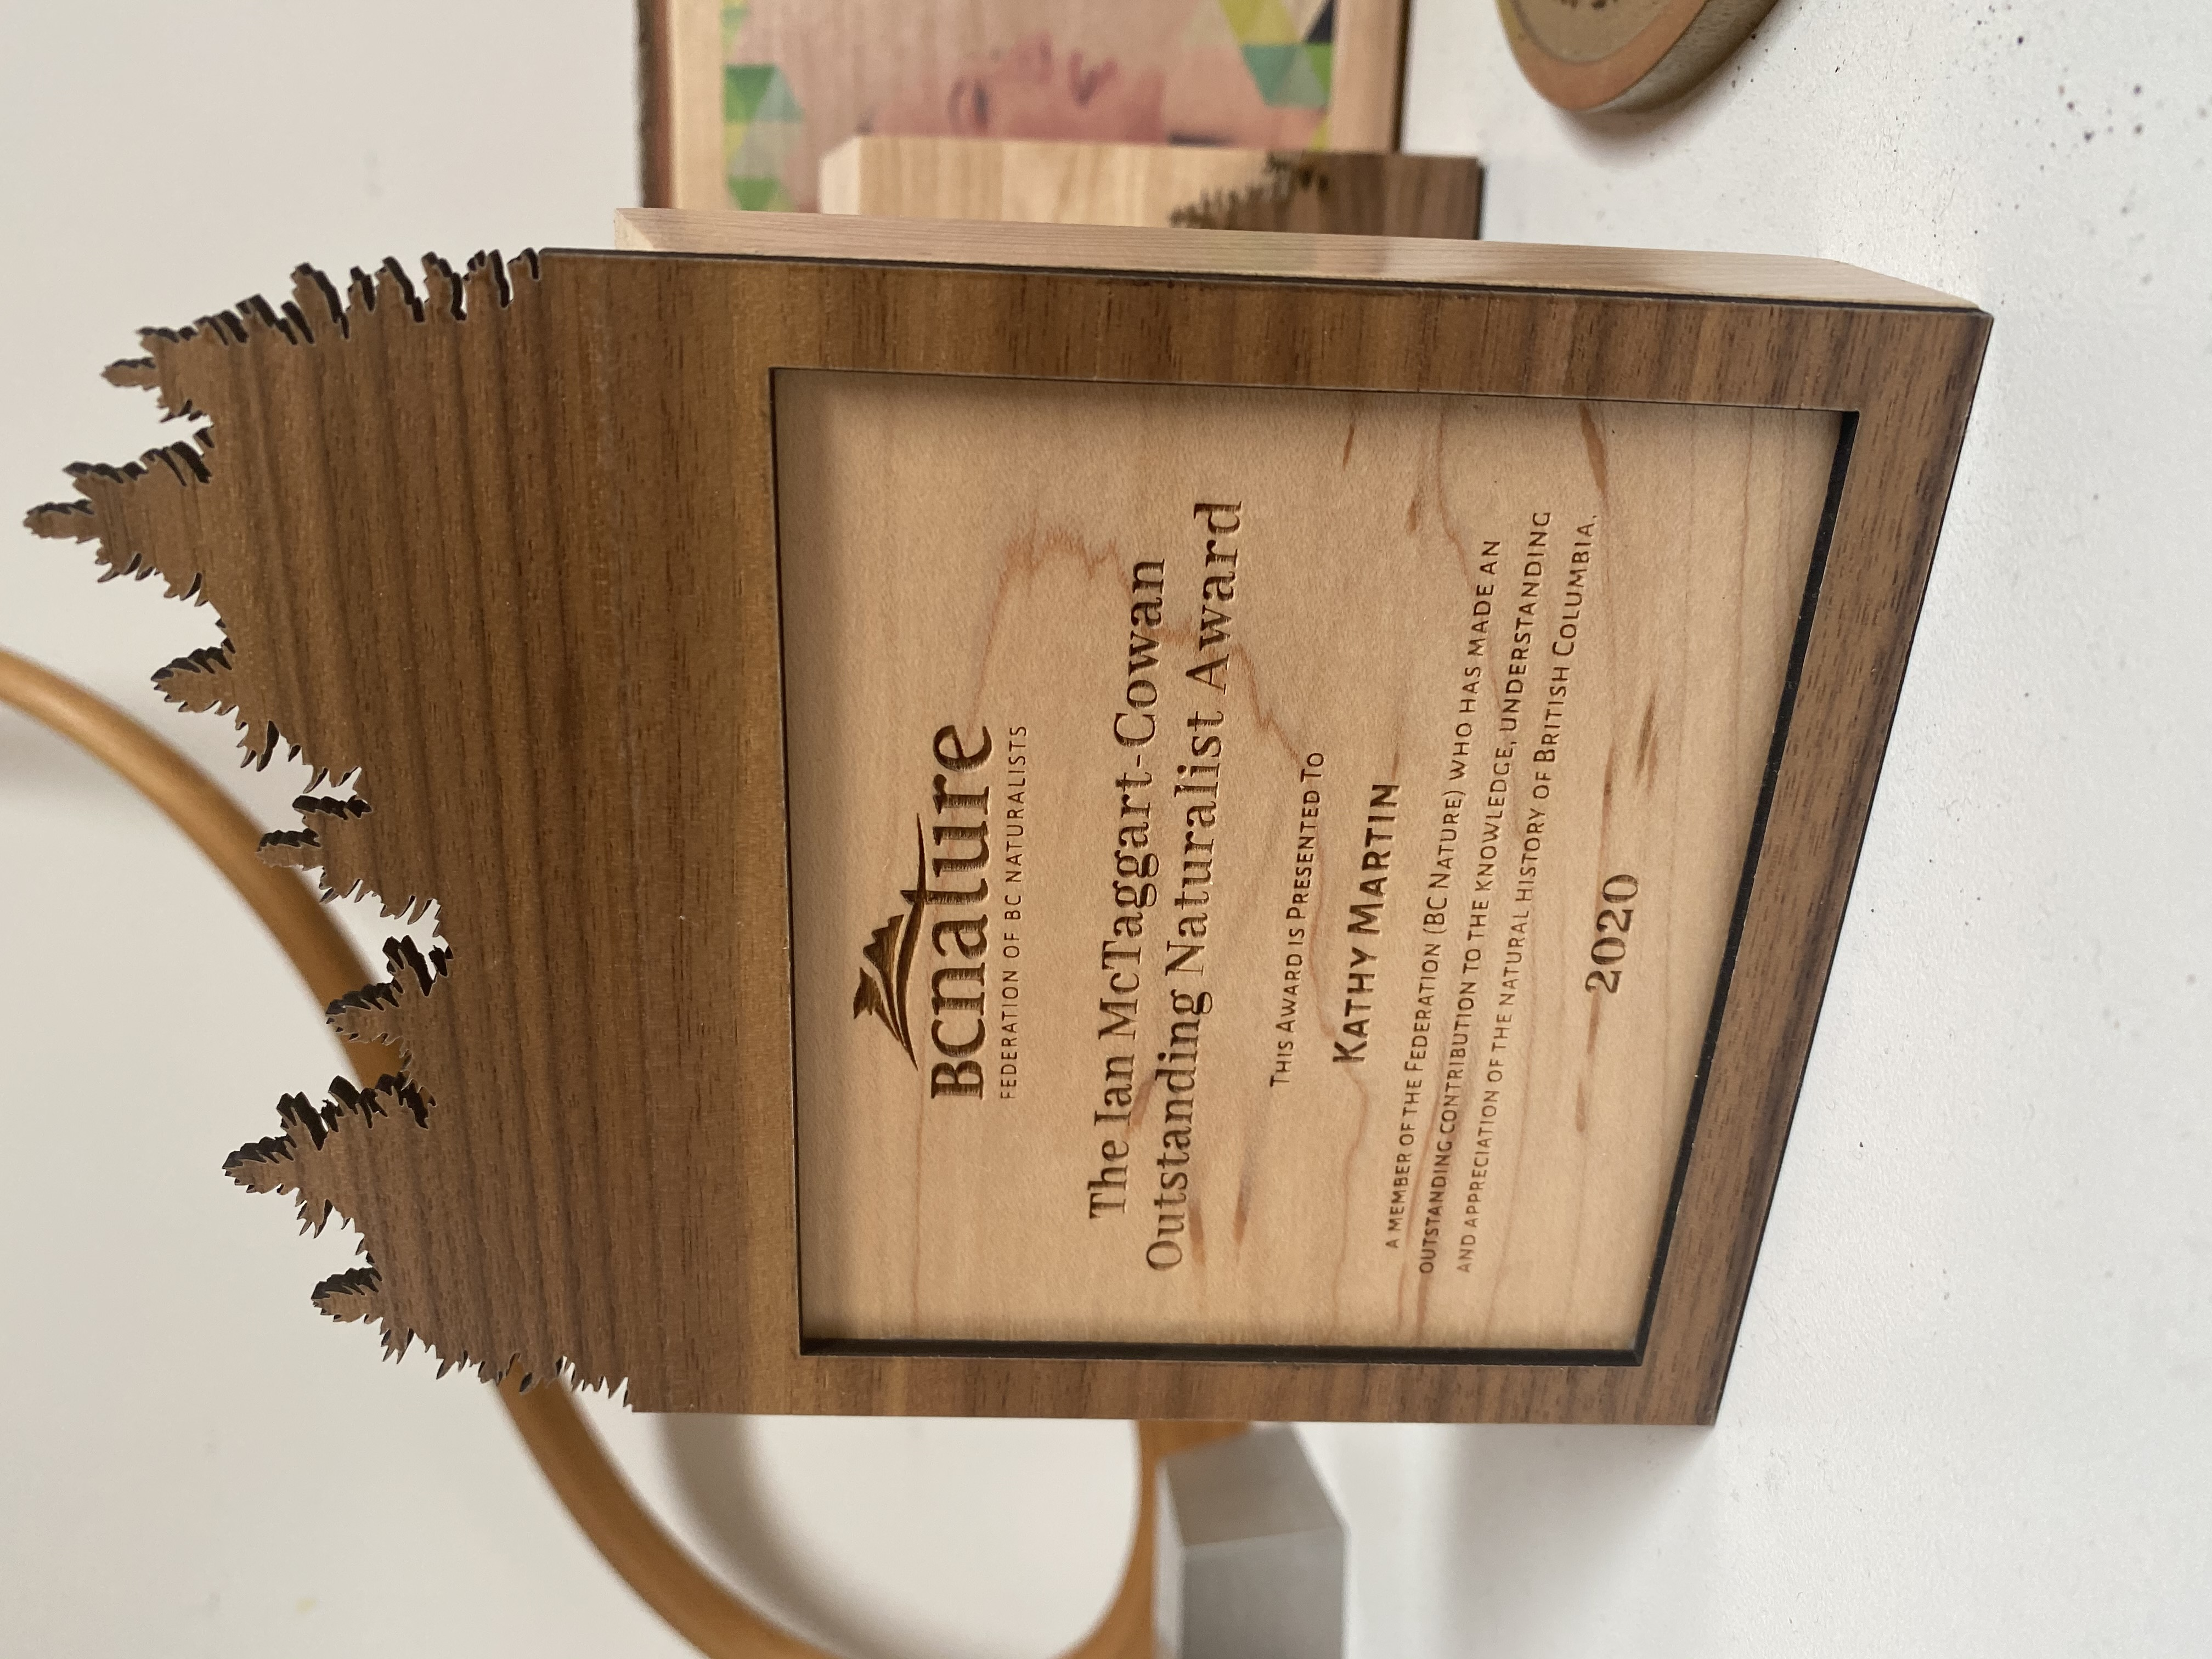 sustainable-customized-plaques-laser-engraved-eco-friendly-nonprofit-award-canada-4